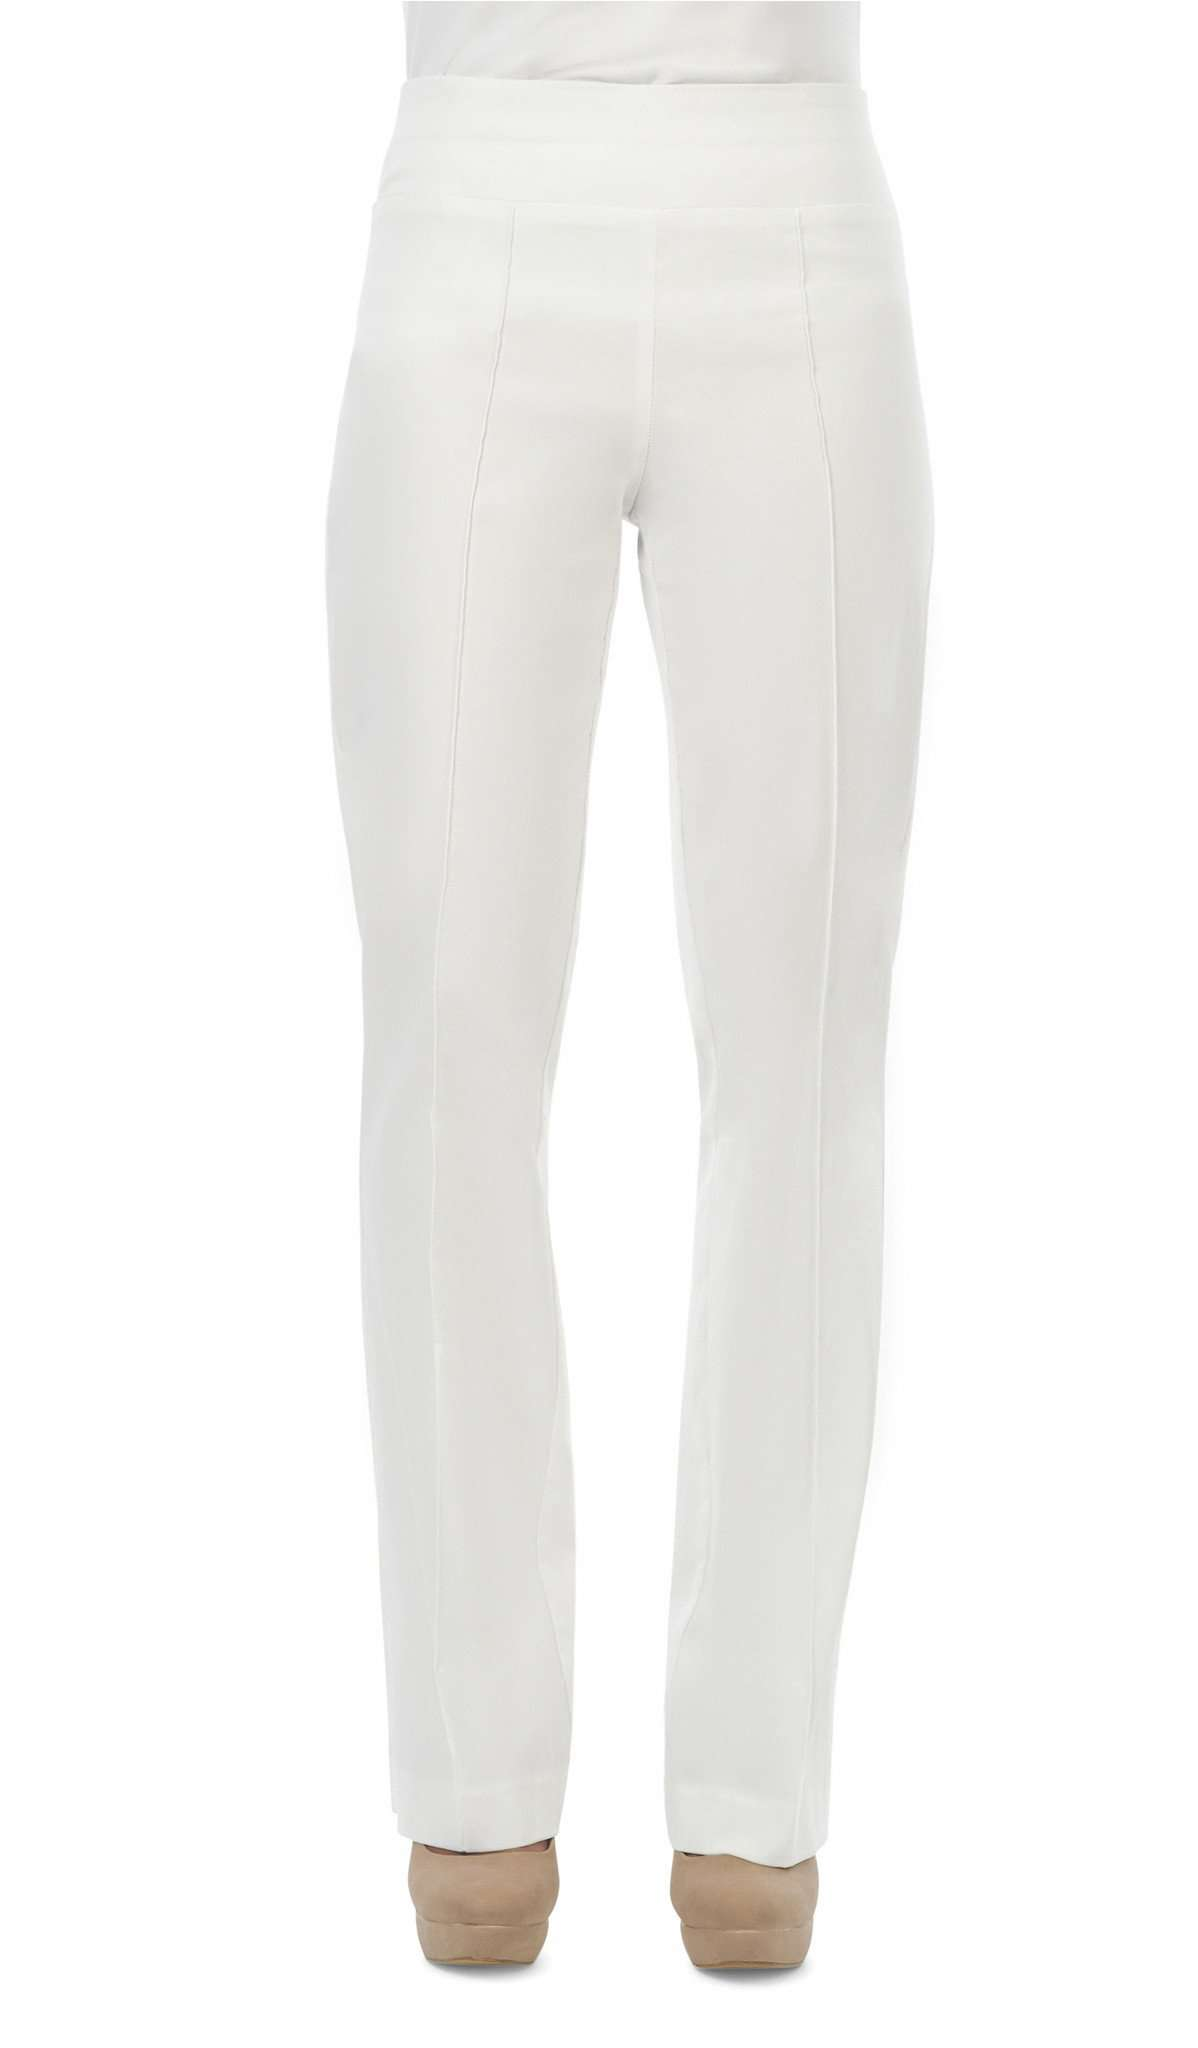 White Pants-Miracle Fit-Quality and Comfort-Made in Canada-Best Seller 10 Years-Enjoy the Quality - Yvonne Marie